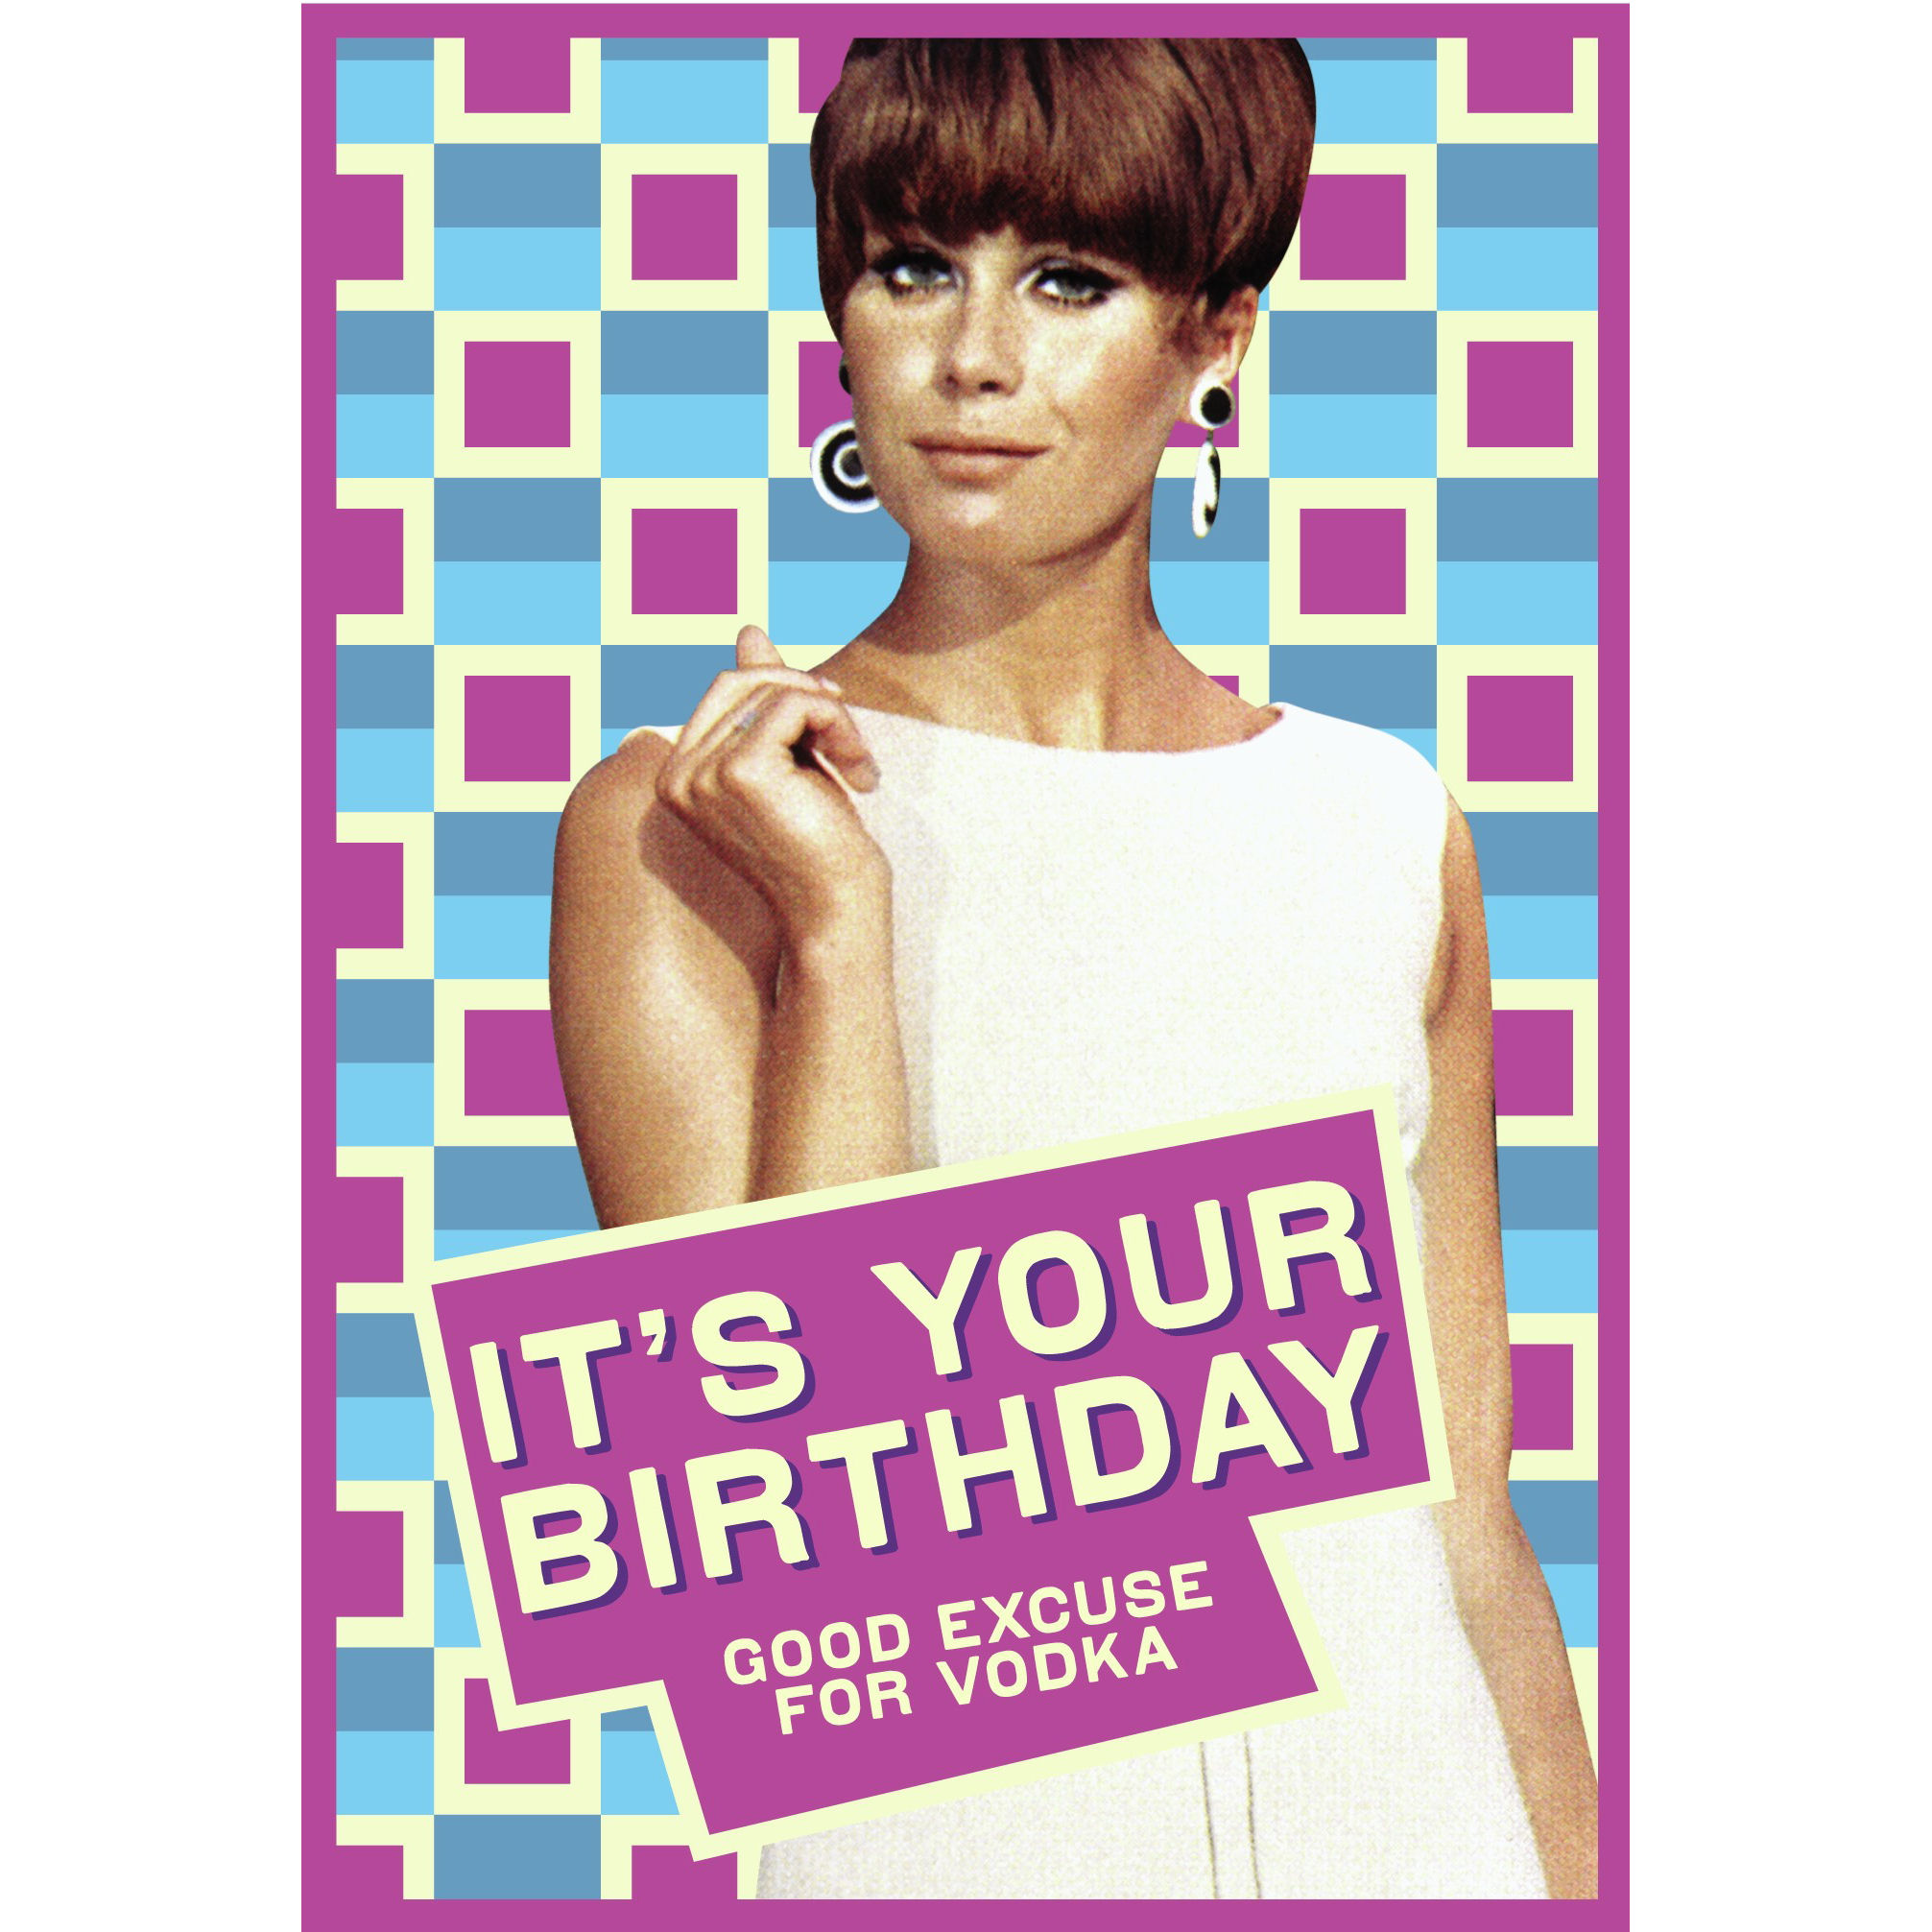 Its your birthday good excuse for vodka greeting card retro birthday its your birthday good excuse for vodka greeting card retro birthday humour gift bookmarktalkfo Gallery